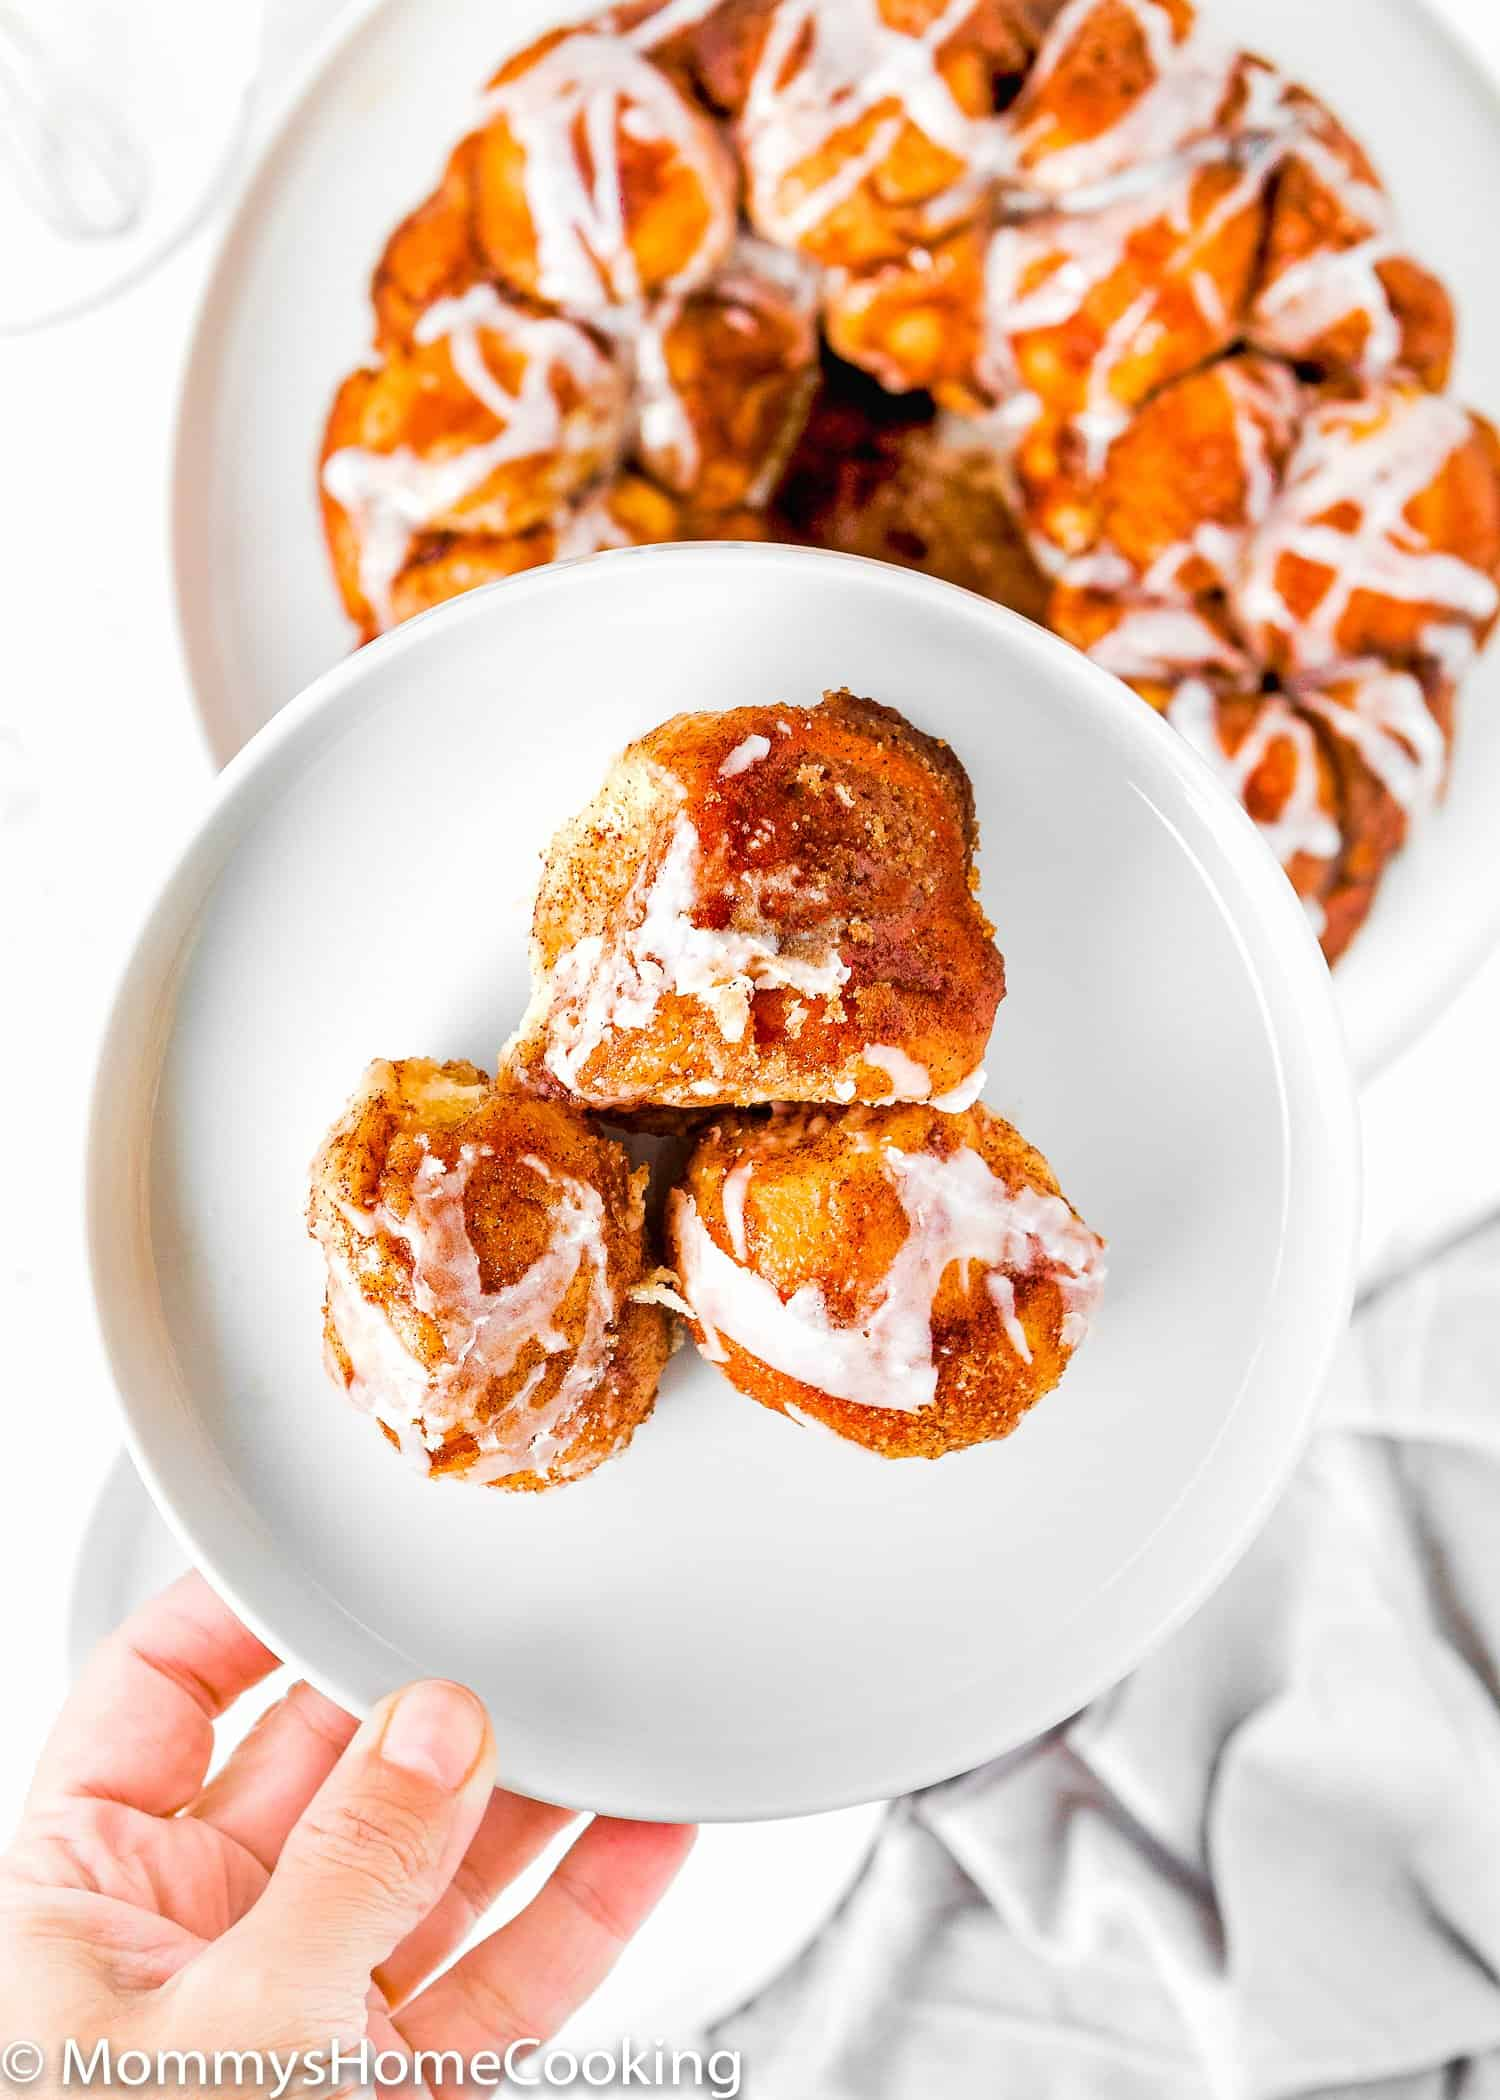 three pieces of Homemade Eggless Monkey Bread on a plate